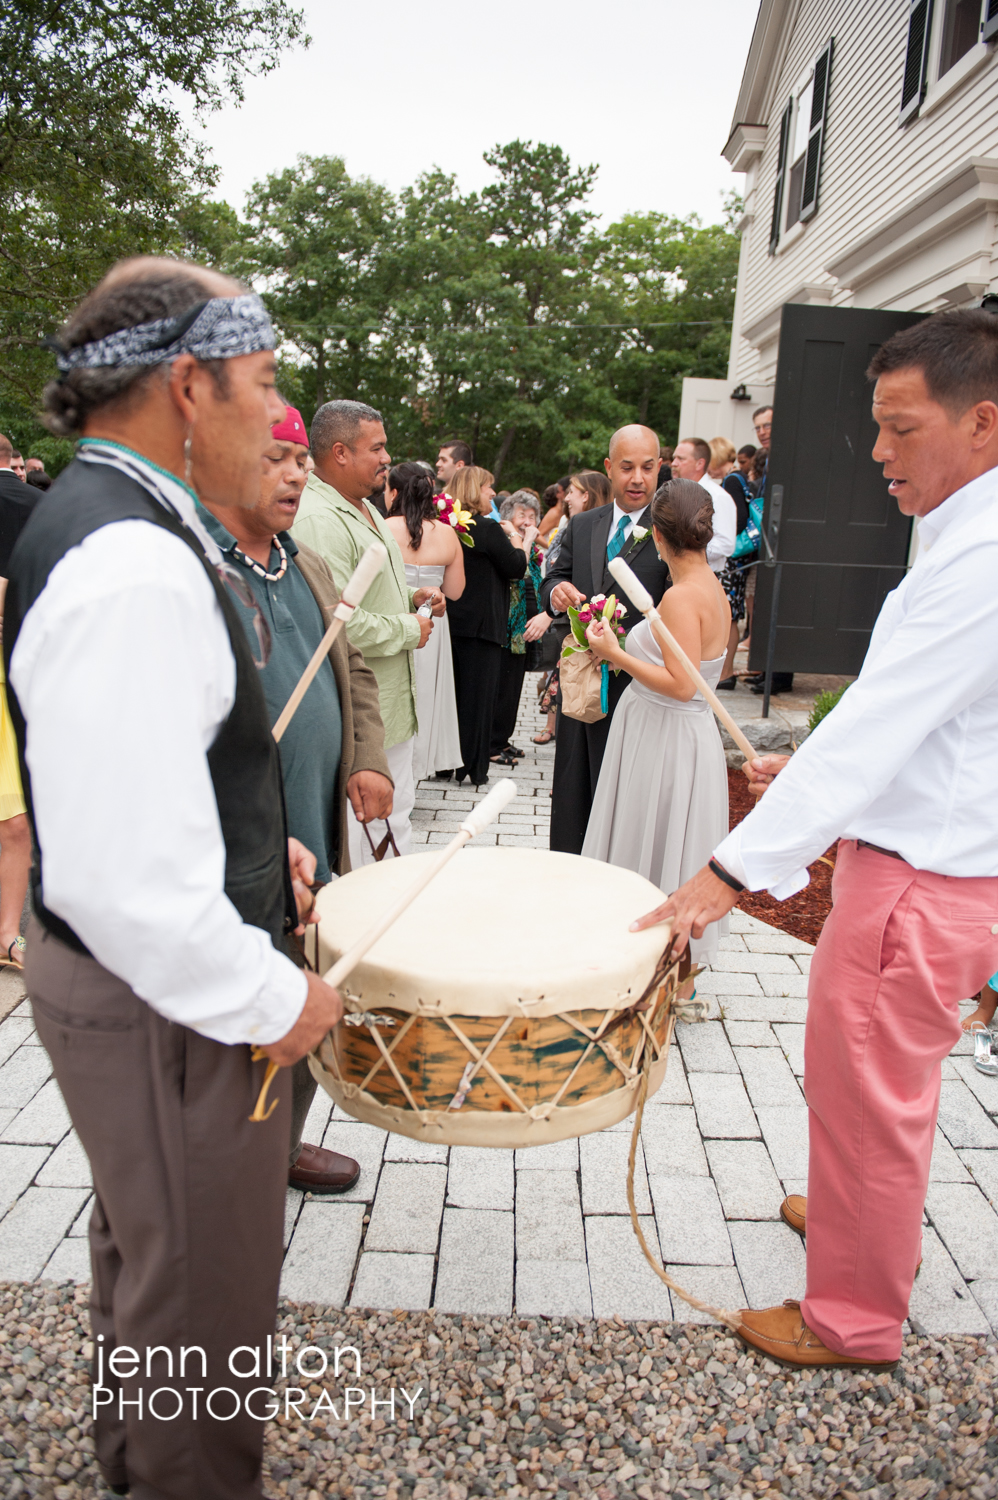 drummers and guests of a Cape Cod Wedding, Mashpee Old Indian Meeting House